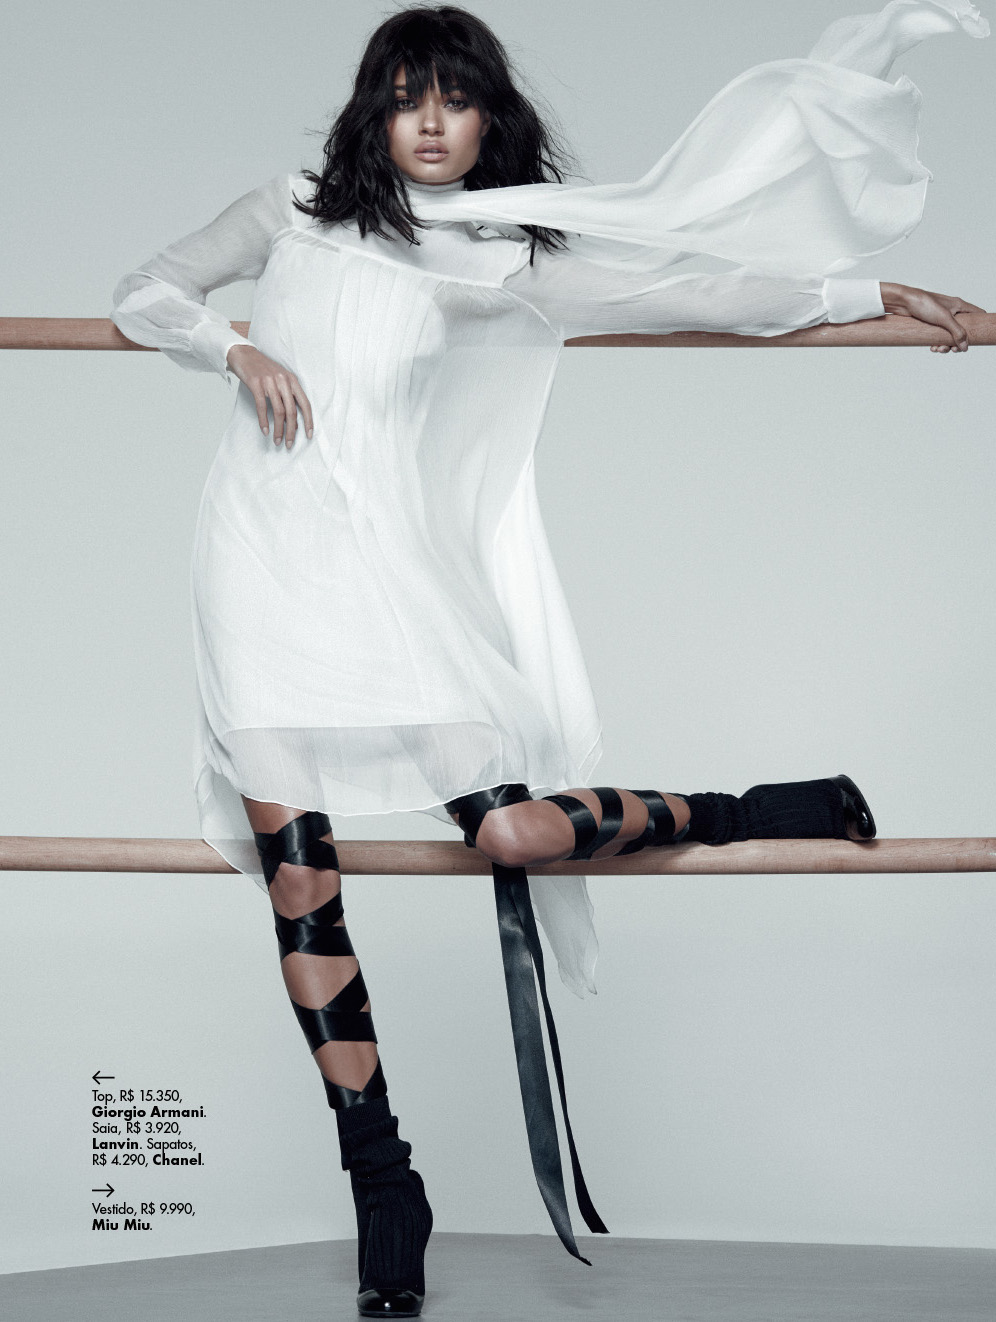 01-Black-Swan-Daniela-Braga-By-Nicole-Heiniger-For-Lofficiel-Brasil-June-2015.jpg